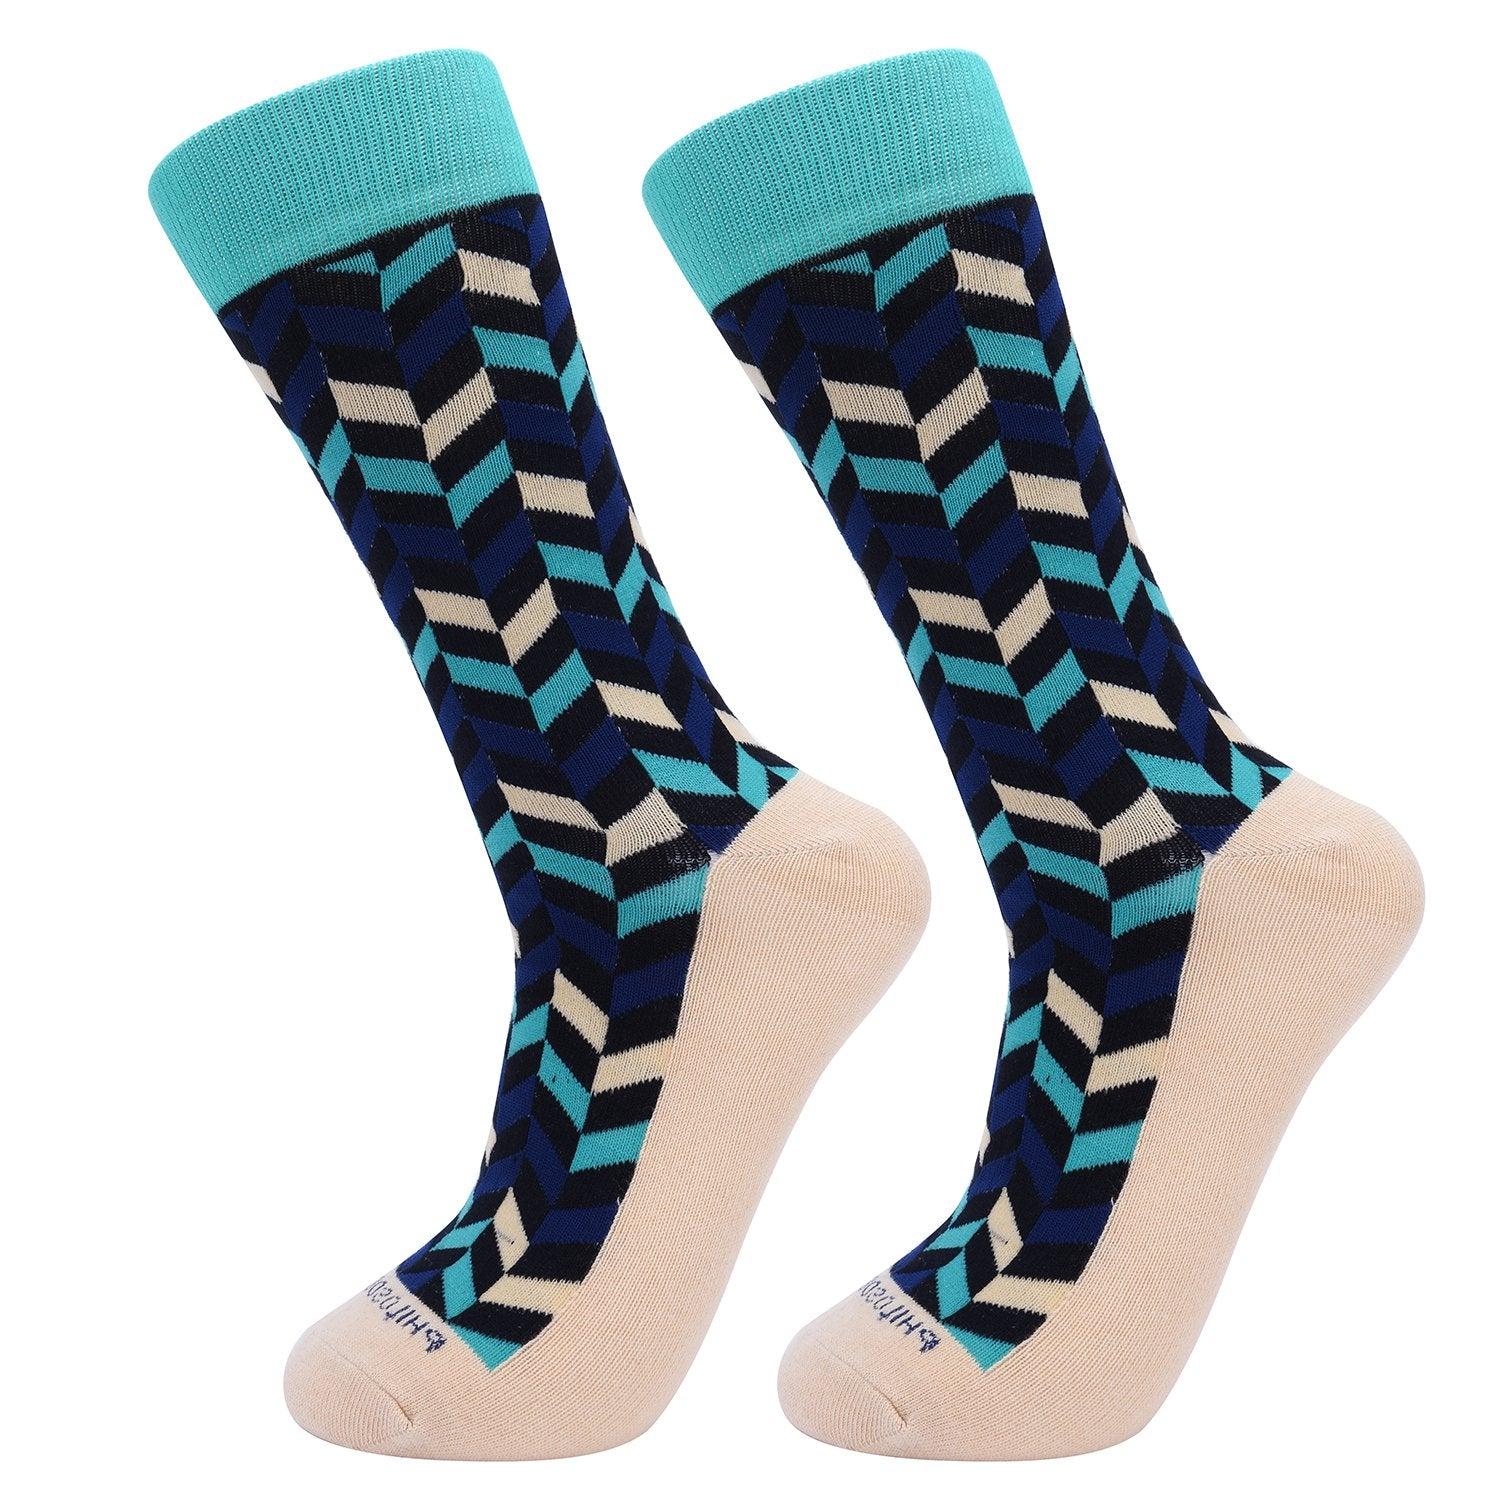 Socks-Very-Herringbone-Cool-Patterns-Crew-Socks-Green